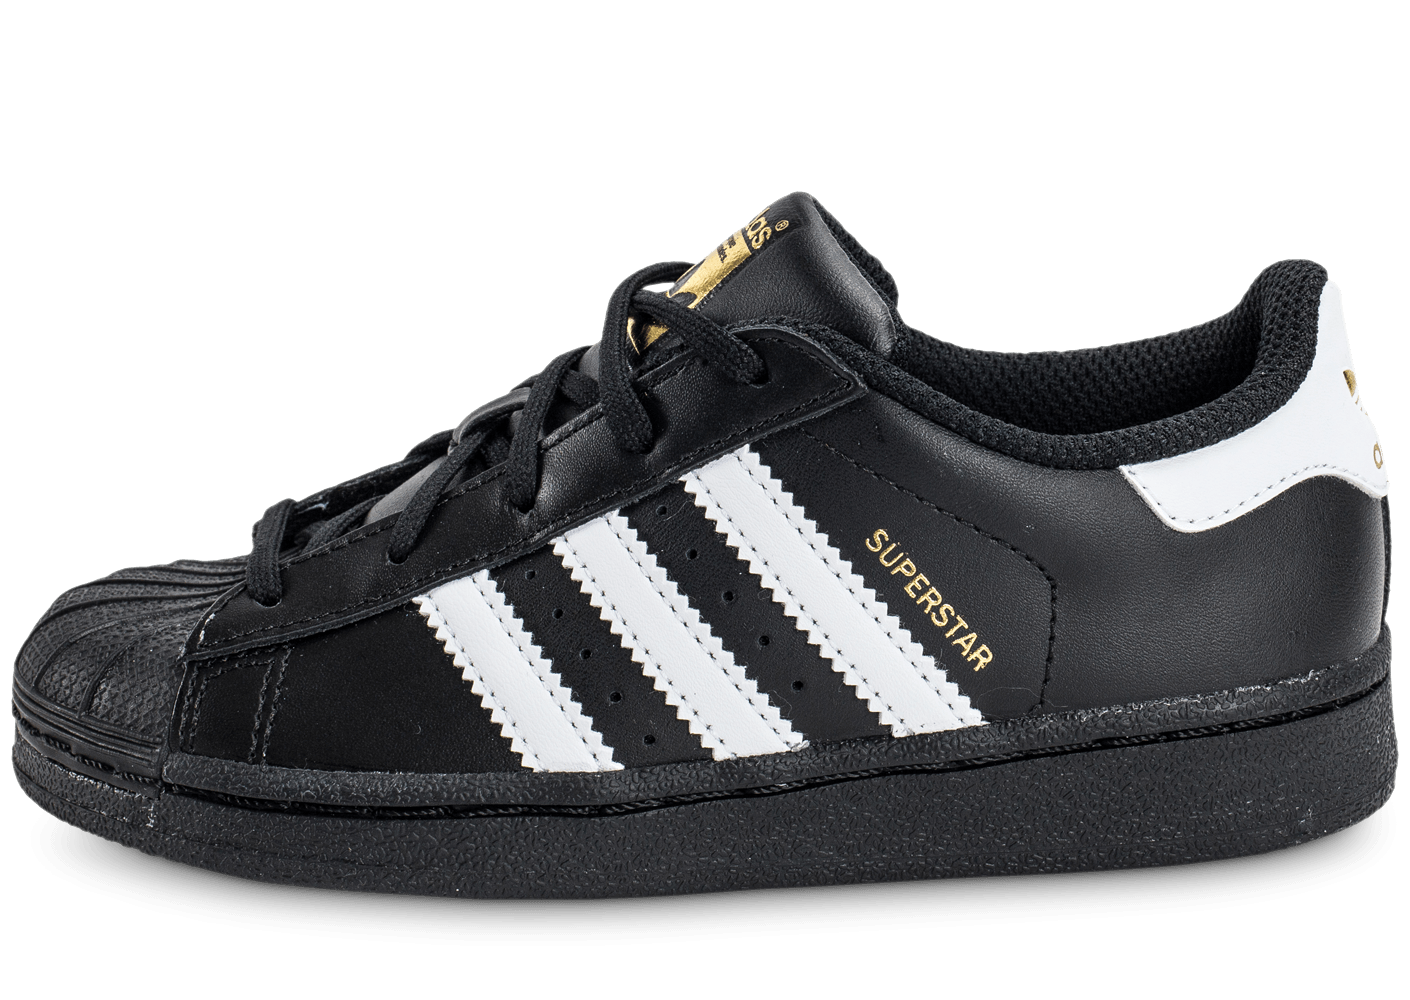 adidas superstar foundation enfant noire et blanche chaussures adidas chausport. Black Bedroom Furniture Sets. Home Design Ideas